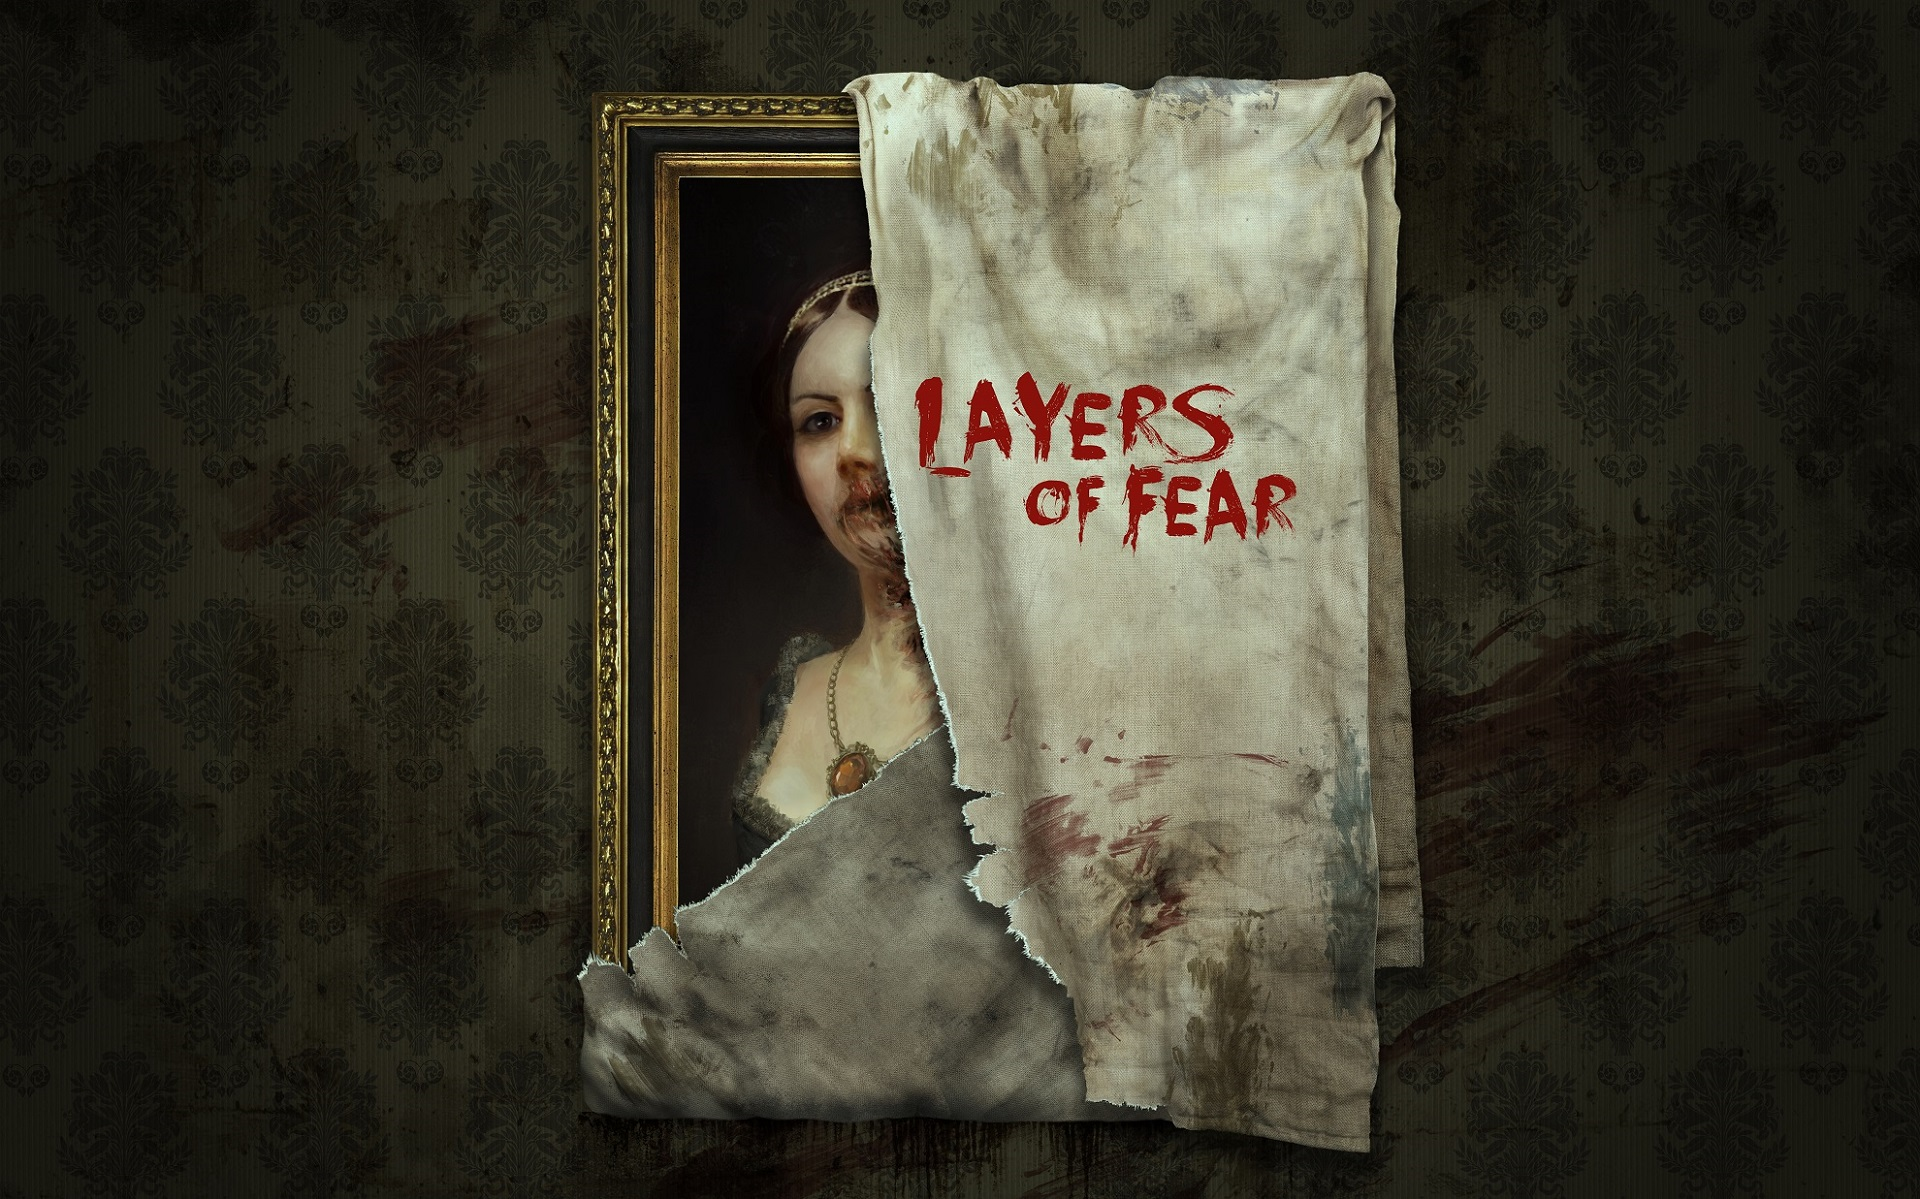 http://presskit.blooberteam.com/layers_of_fear/images/layers_of_fear.png